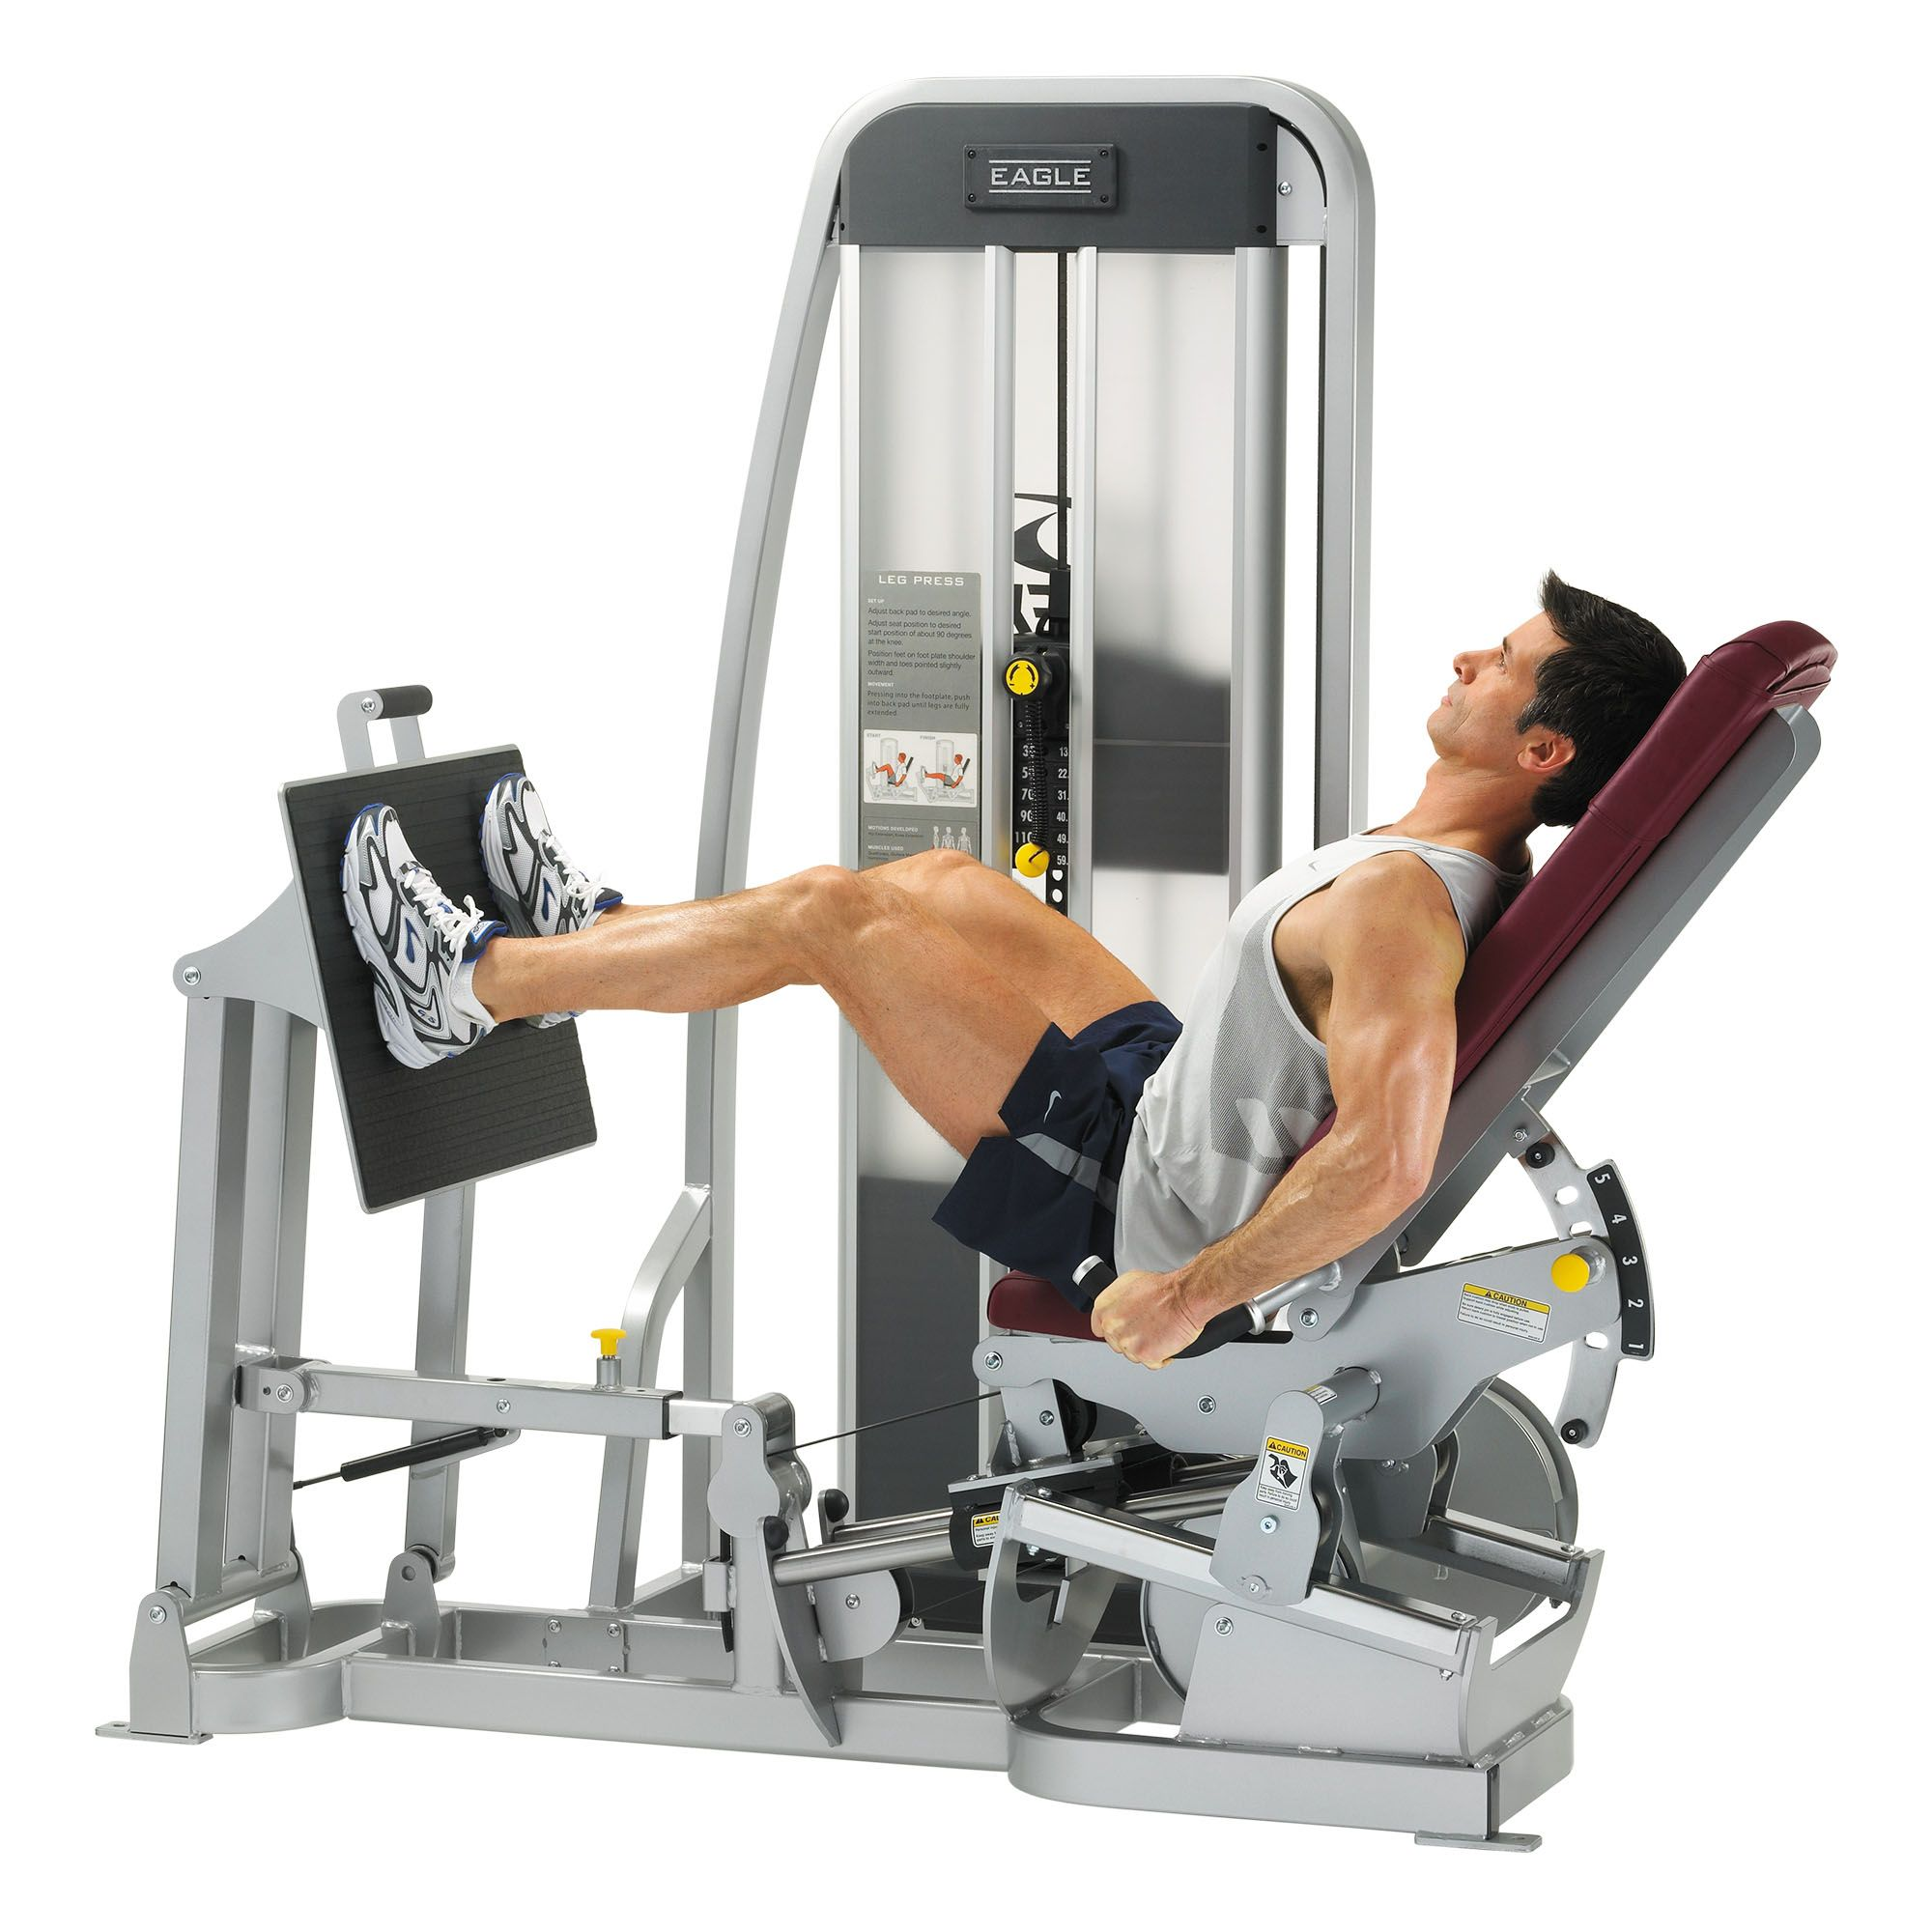 Cybex Eagle Leg Press - Sweatband.com